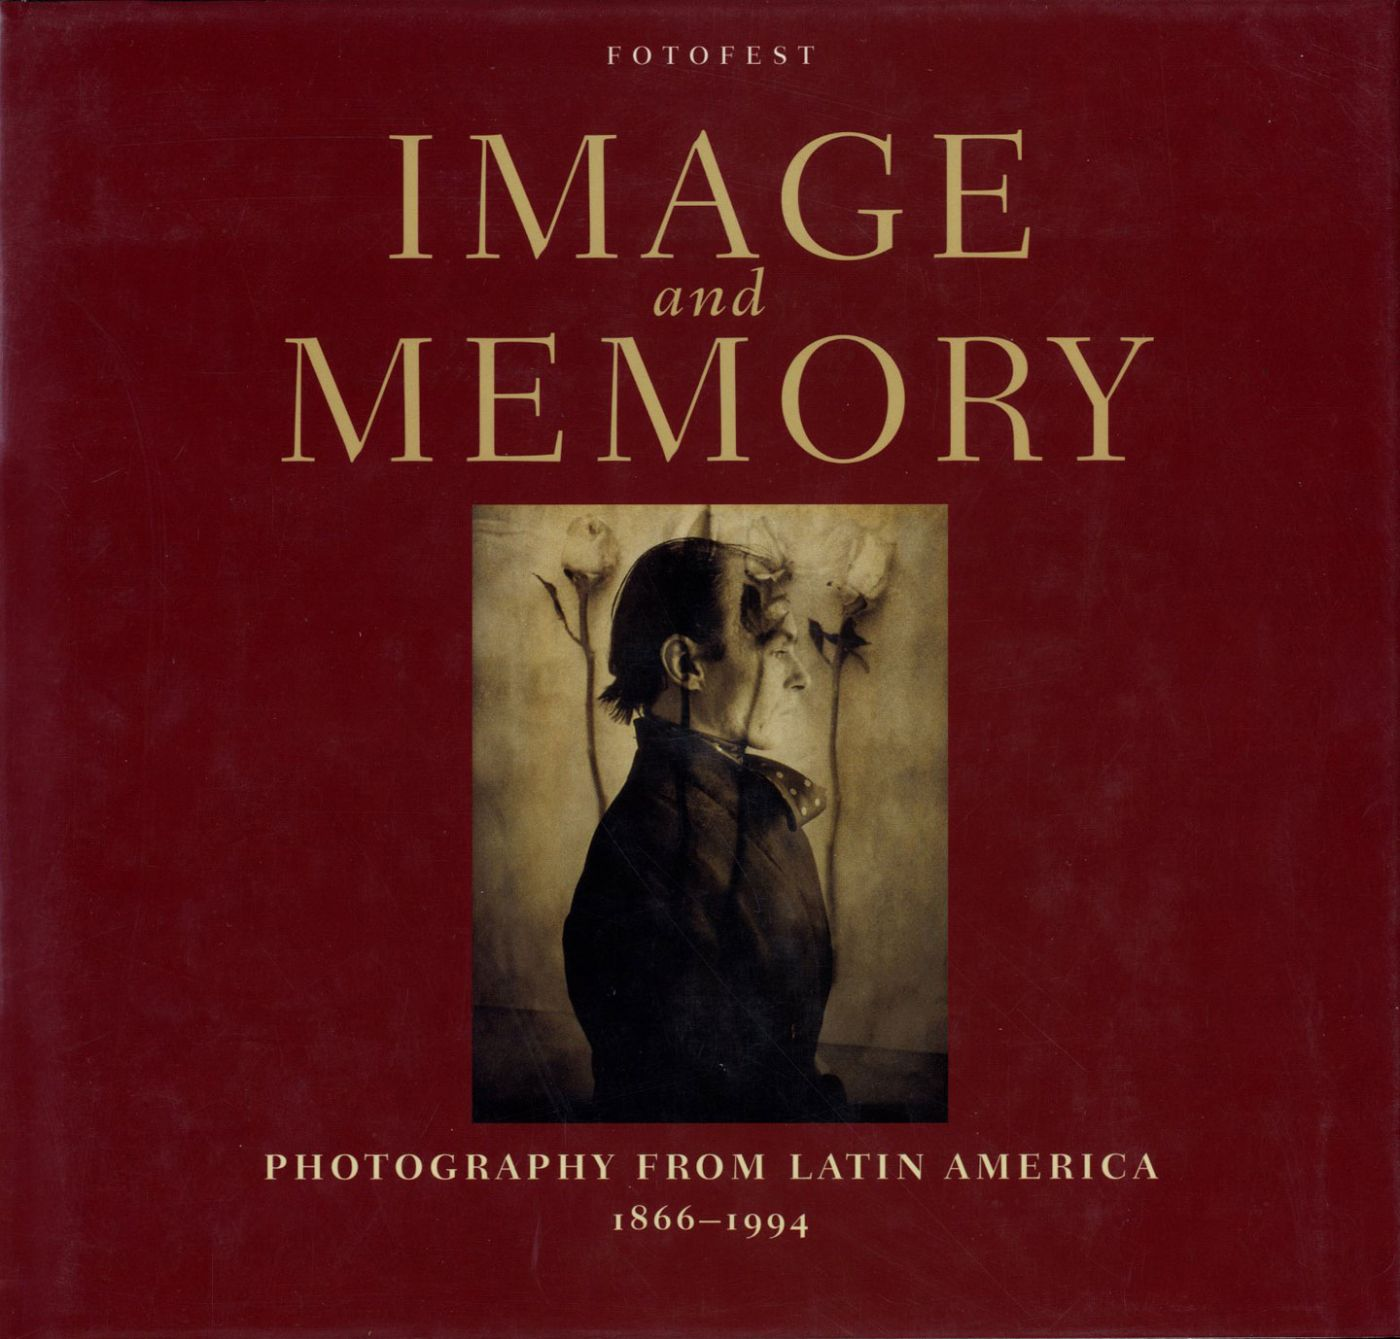 Image and Memory: Photography from Latin America 1866-1994